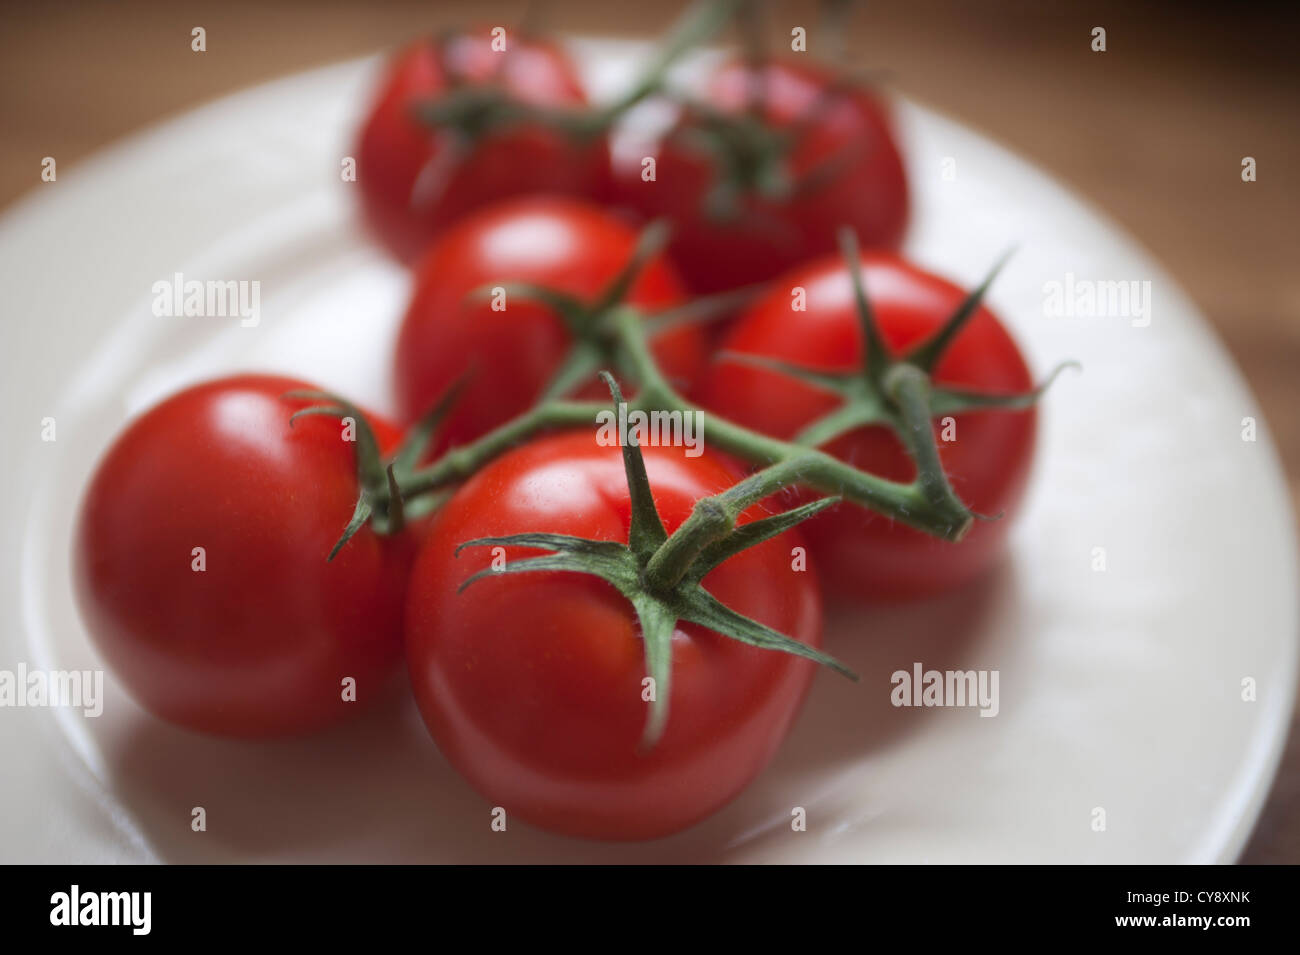 Group of Tomatoes on a white plate. Tomatoes are still connected to the vine stems. Stock Photo